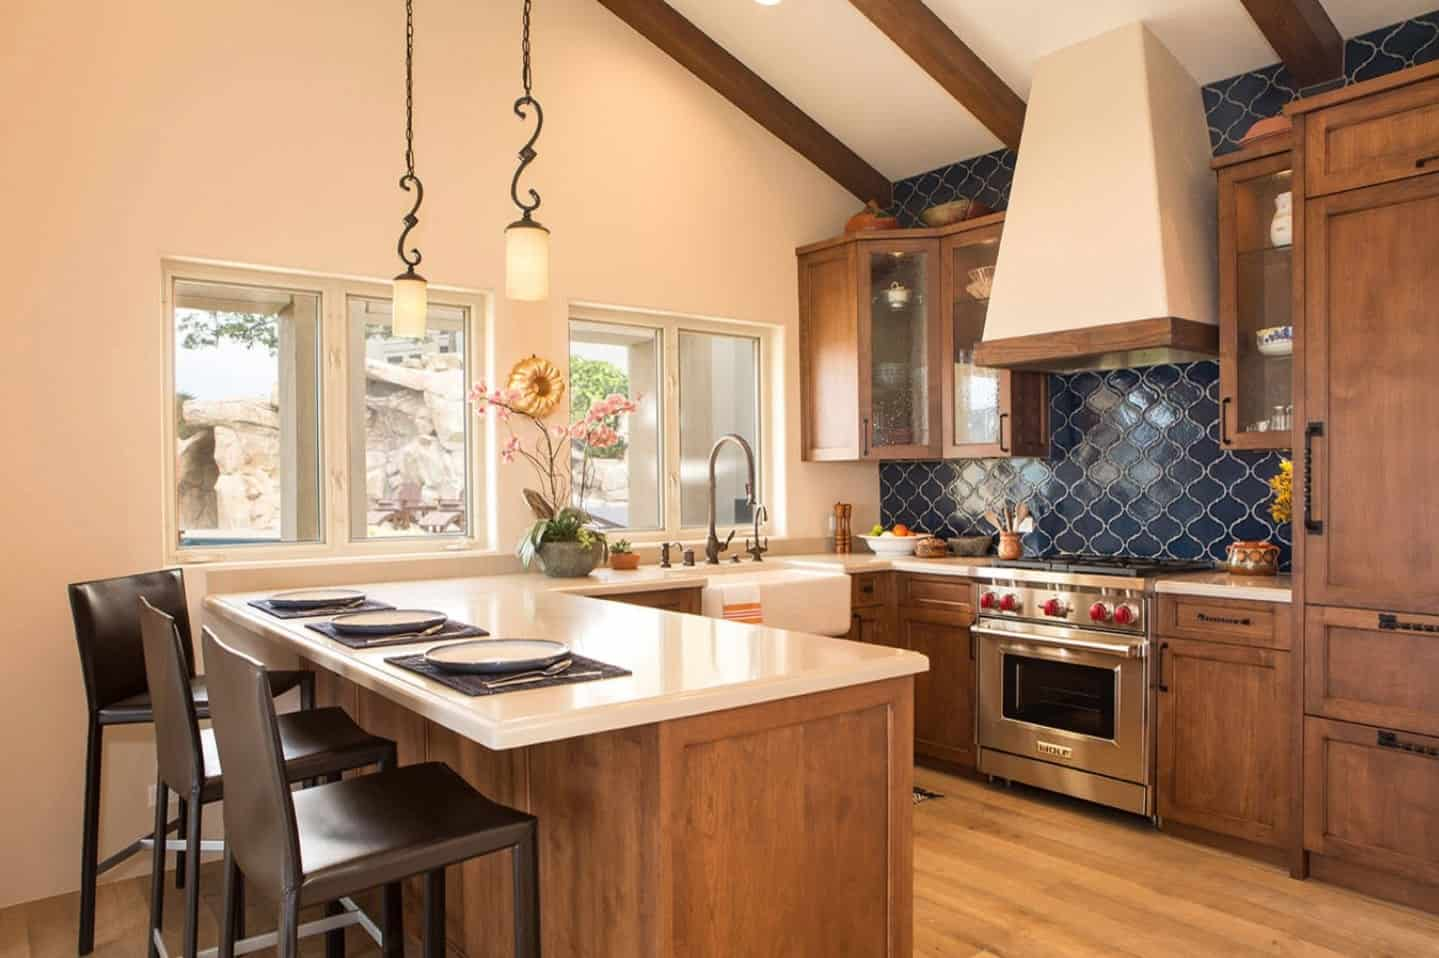 There is a homey warmth and cozy quality to this simple and small kitchen that has a U-shaped wooden peninsula with white countertops. This is topped with a beige shed ceiling with exposed wooden beams that match the cabinetry and the hardwood flooring.